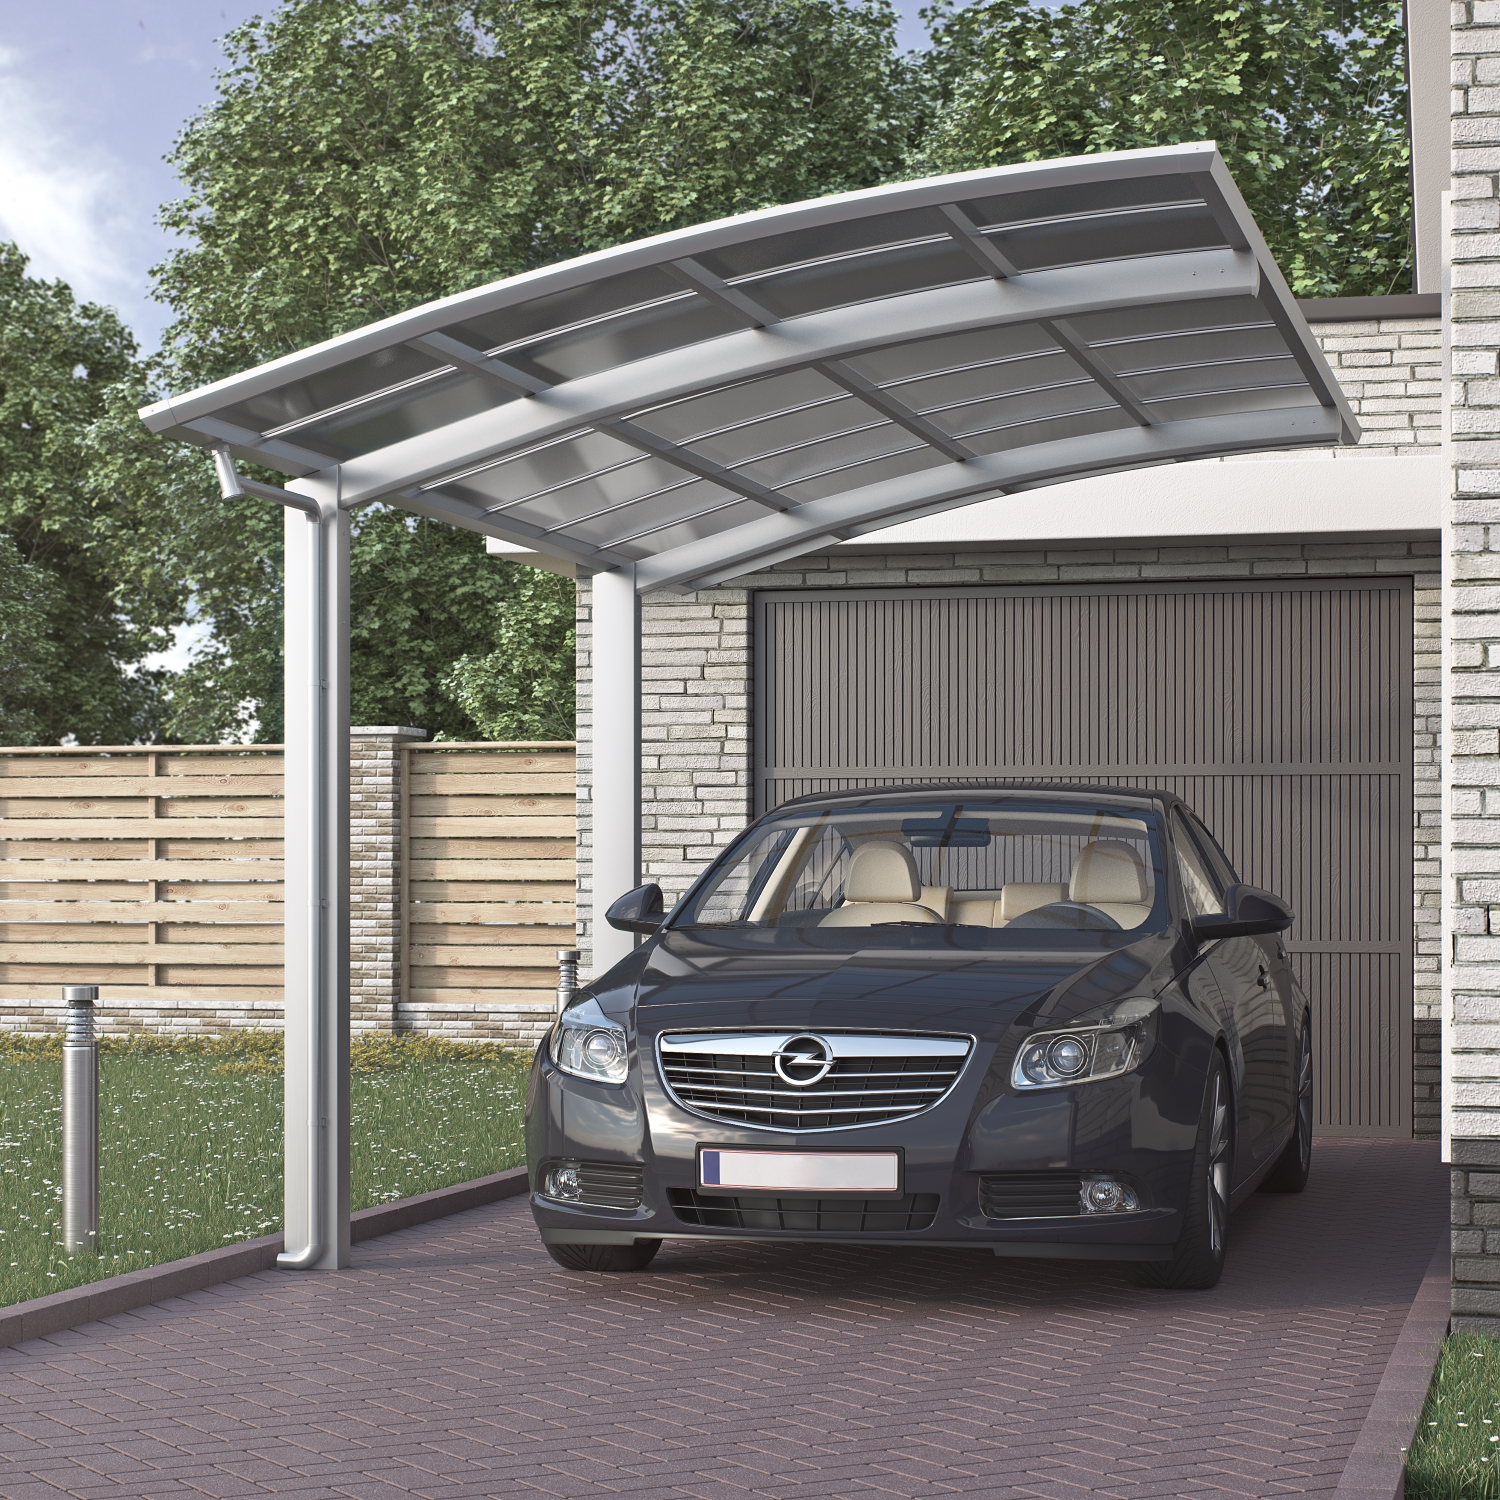 doppelcarport bogendach garage unterstand aluminium. Black Bedroom Furniture Sets. Home Design Ideas